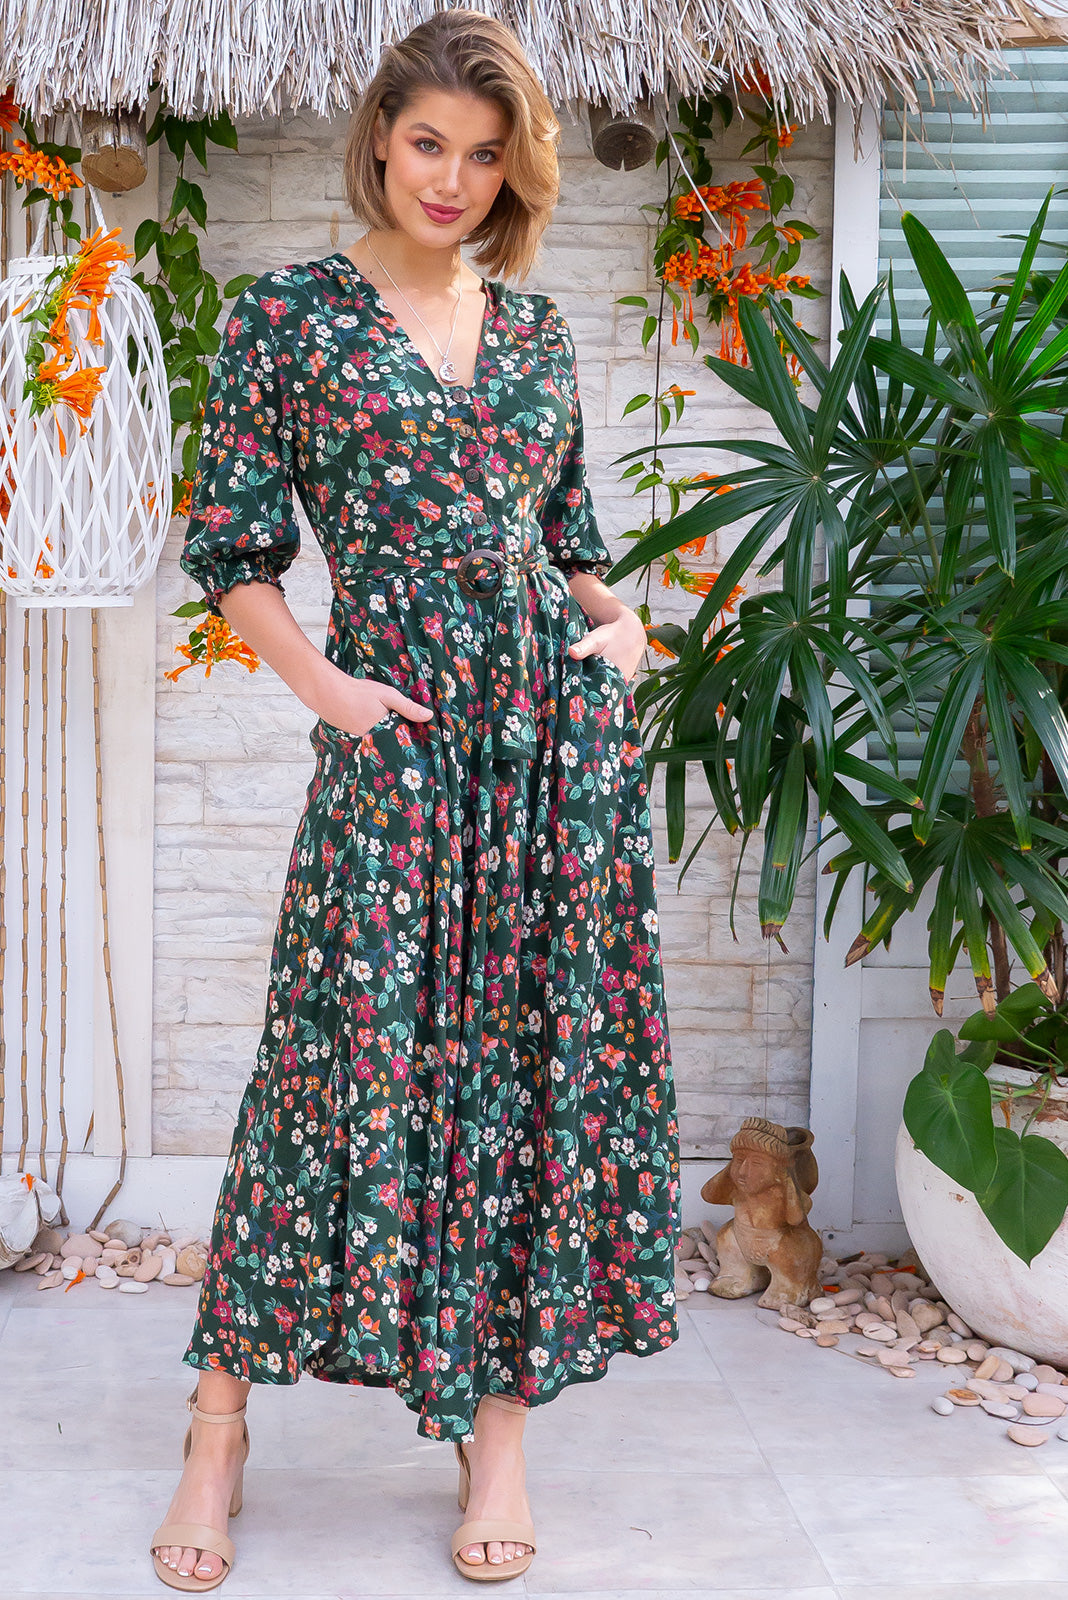 Primrose Autumn Green Dress features functional buttons from bust to waist, 3/4 sleeve with shirring cuffs, side pockets and woven 100% rayon in Green base with cream, pink and orange floral pattern.